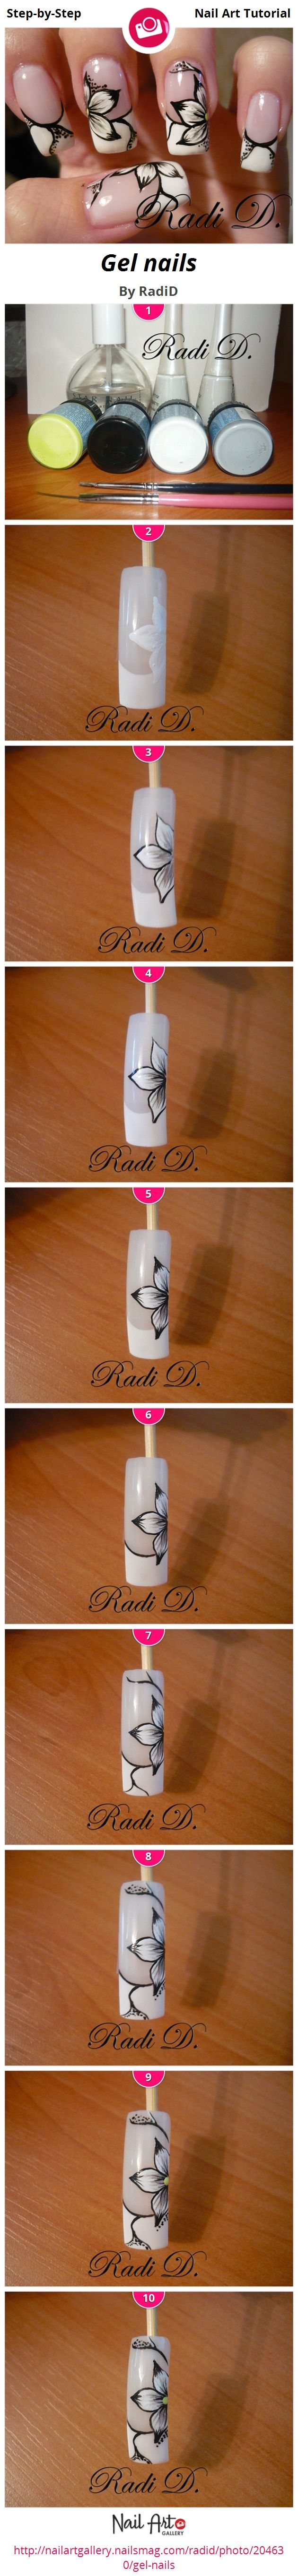 DIY Ideas Nails Art : Gel nails by RadiD - Nail Art Gallery Step-by ...